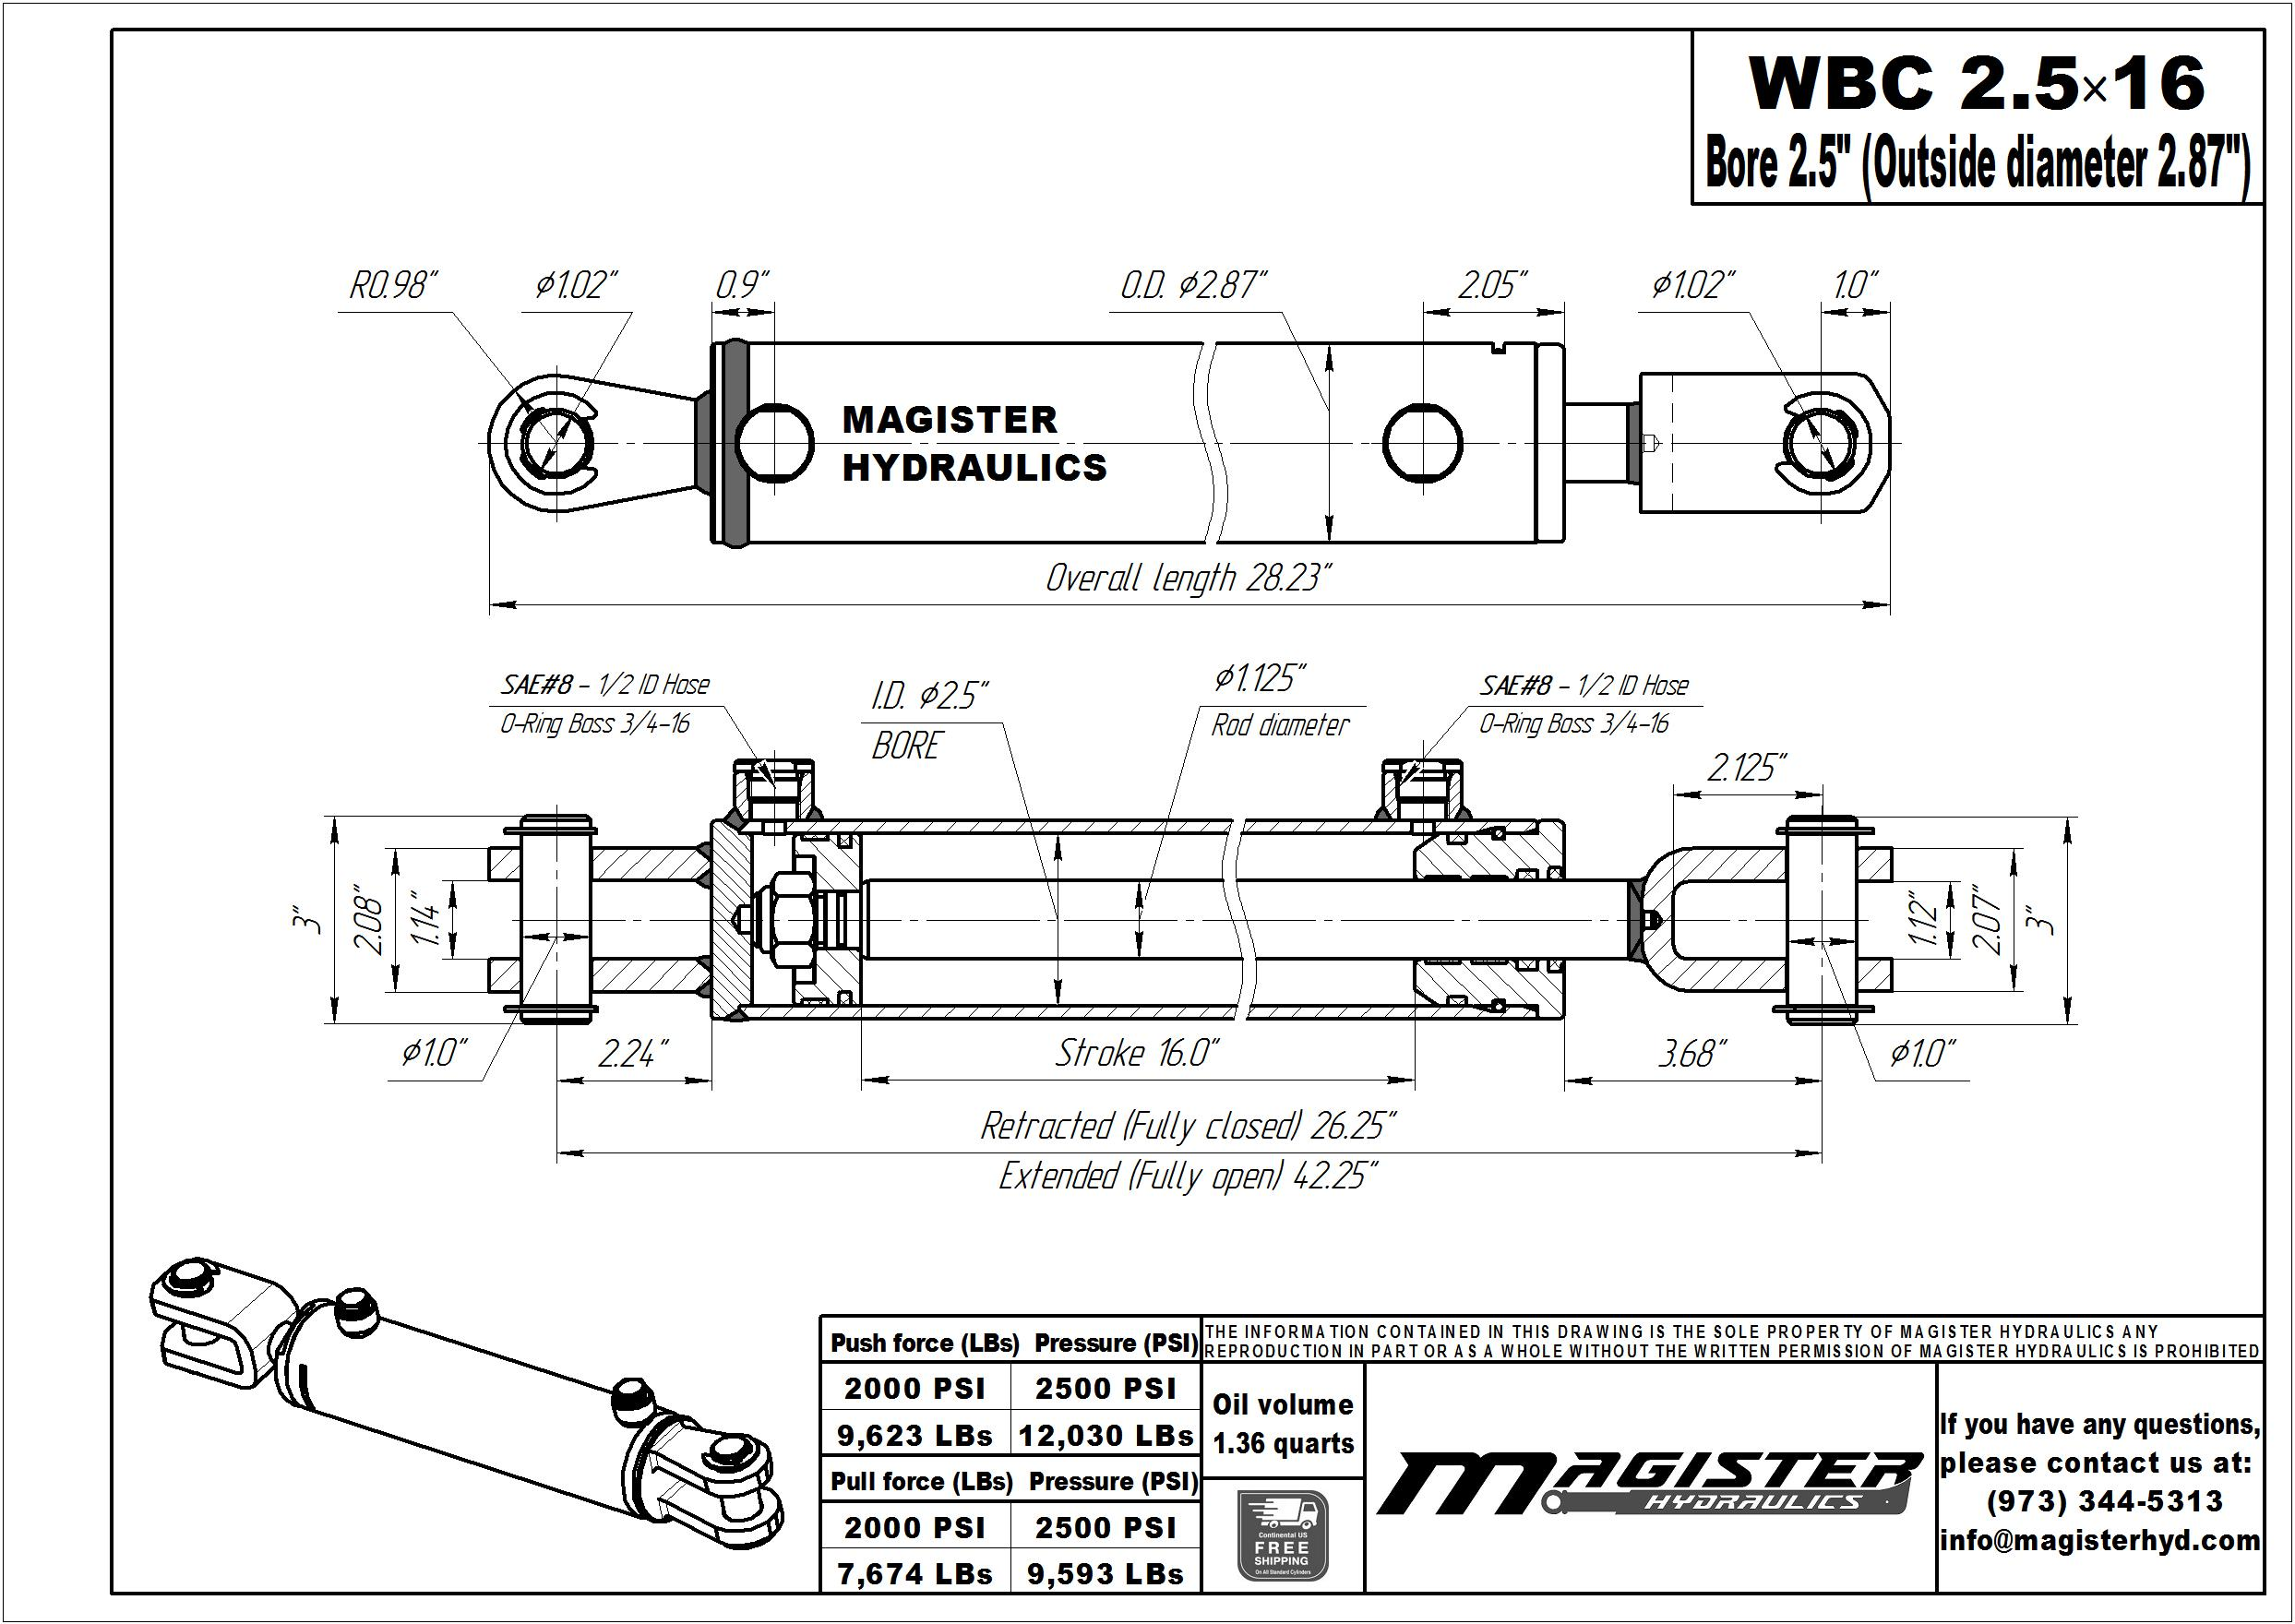 2.5 bore x 16 stroke hydraulic cylinder, ag clevis double acting cylinder | Magister Hydraulics